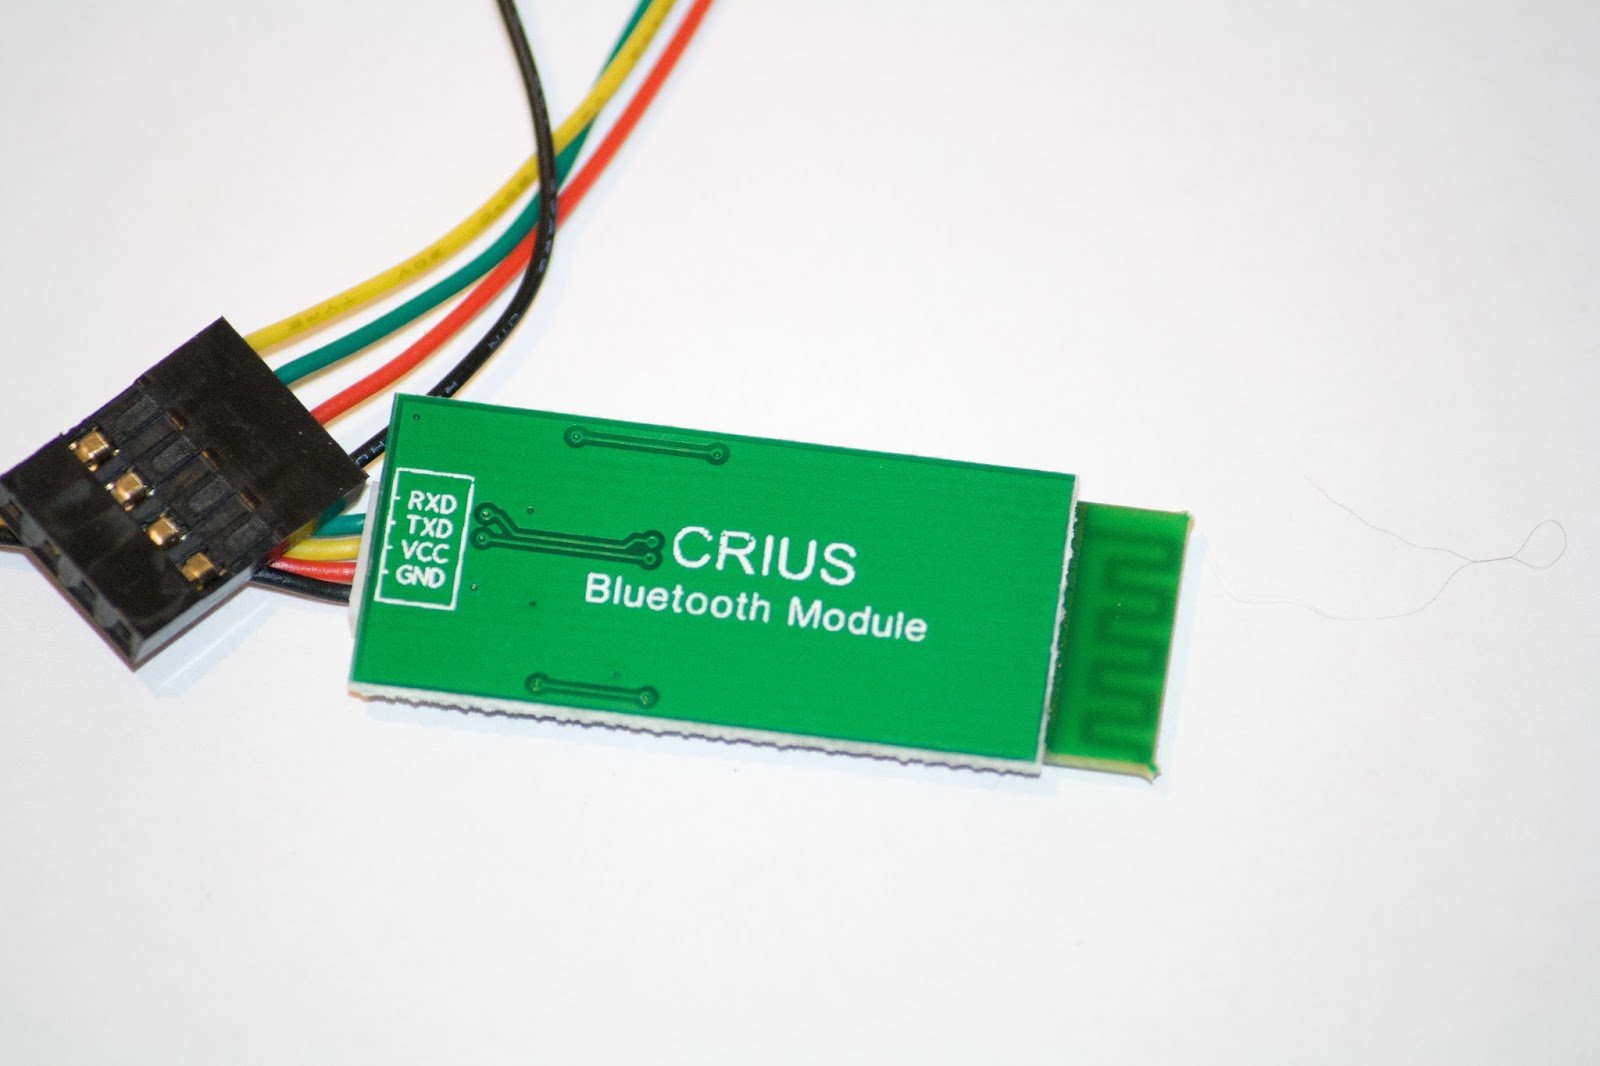 small resolution of the board itself is a crius multiwii se v2 5 i bought this board not knowing much about the configuration process but i am having difficulty finding